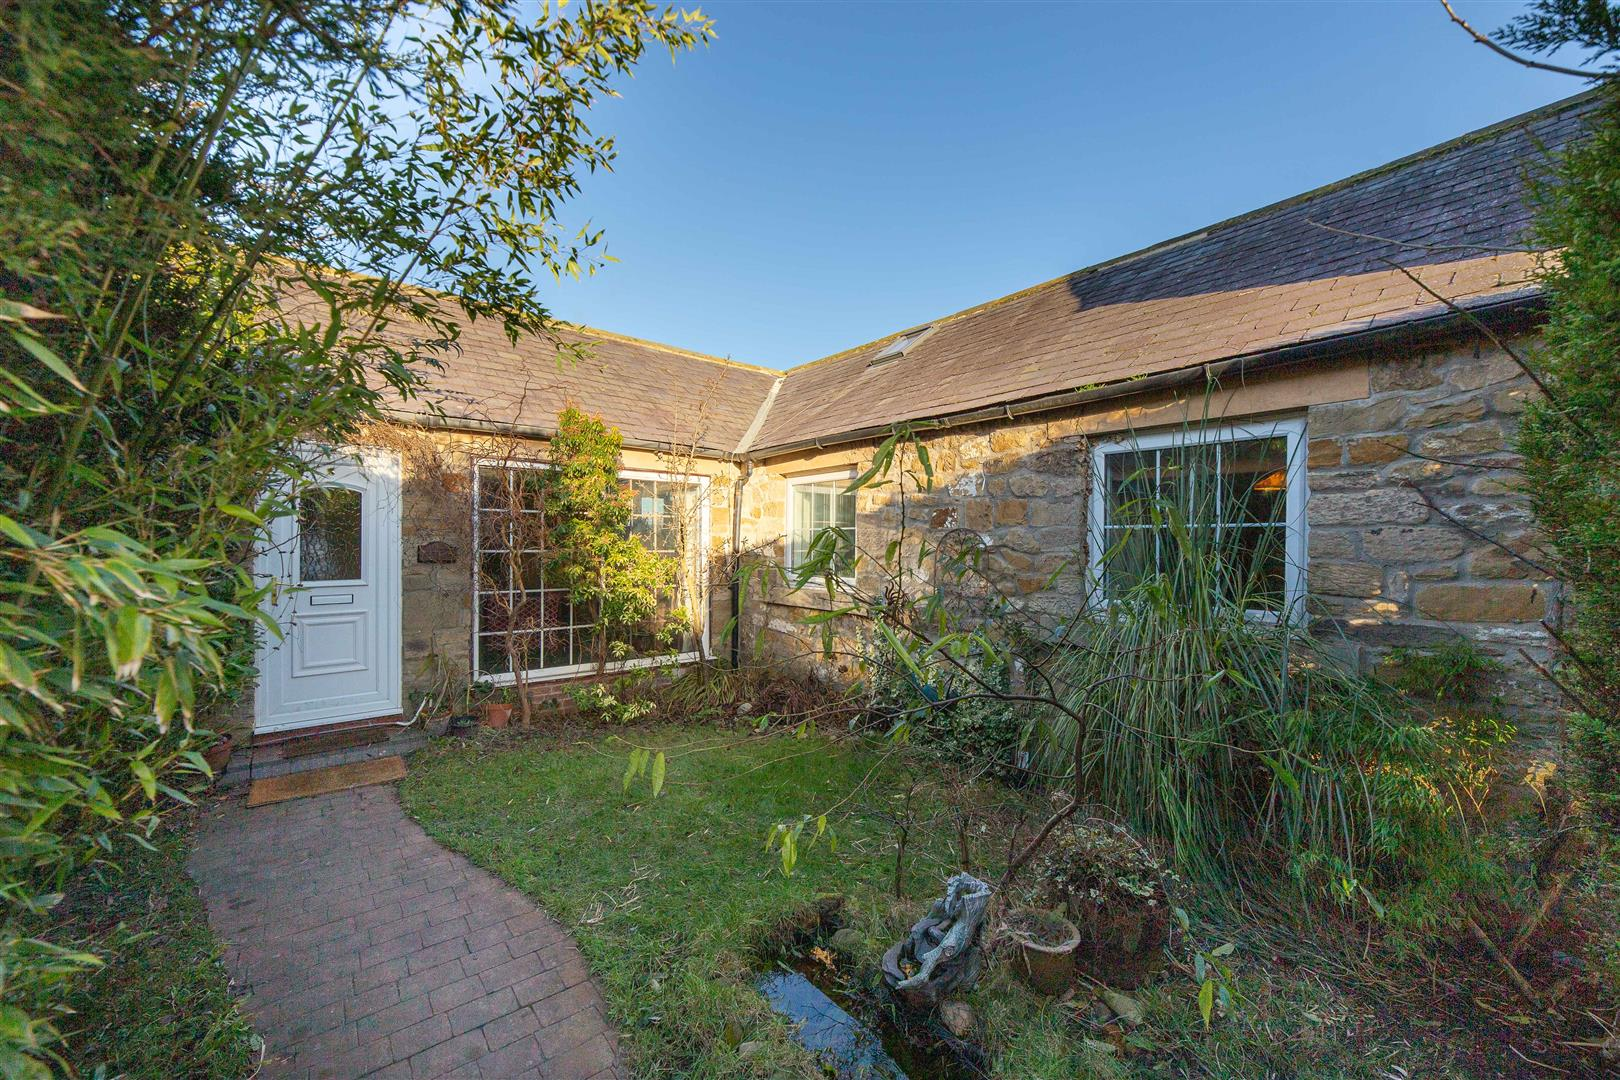 3 bed semi-detached bungalow for sale in Great Park, NE13 9NR, NE13